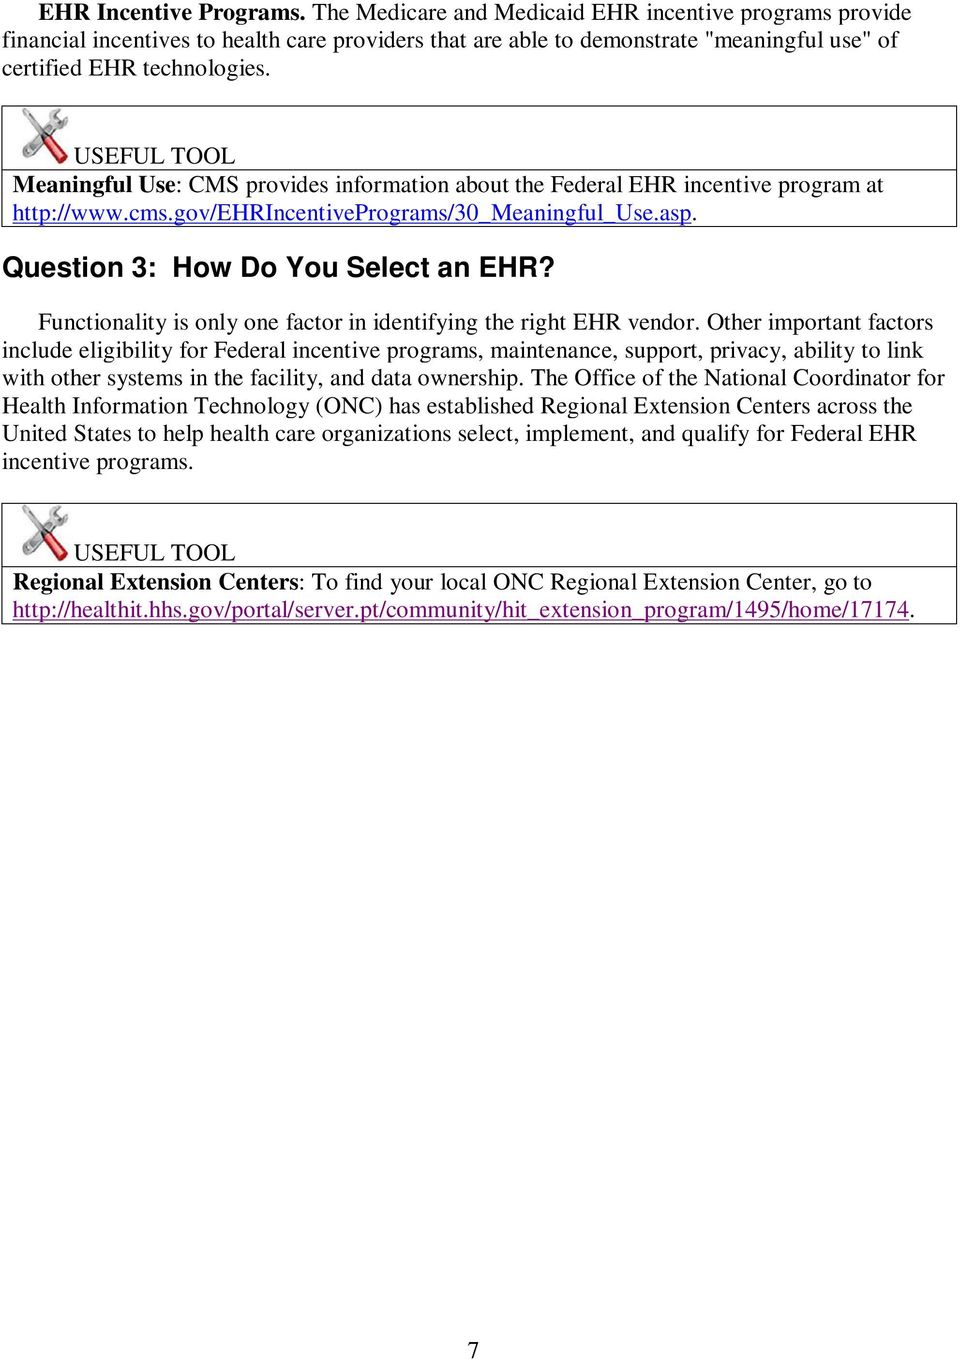 USEFUL TOOL Meaningful Use: CMS provides information about the Federal EHR incentive program at http://www.cms.gov/ehrincentiveprograms/30_meaningful_use.asp. Question 3: How Do You Select an EHR?